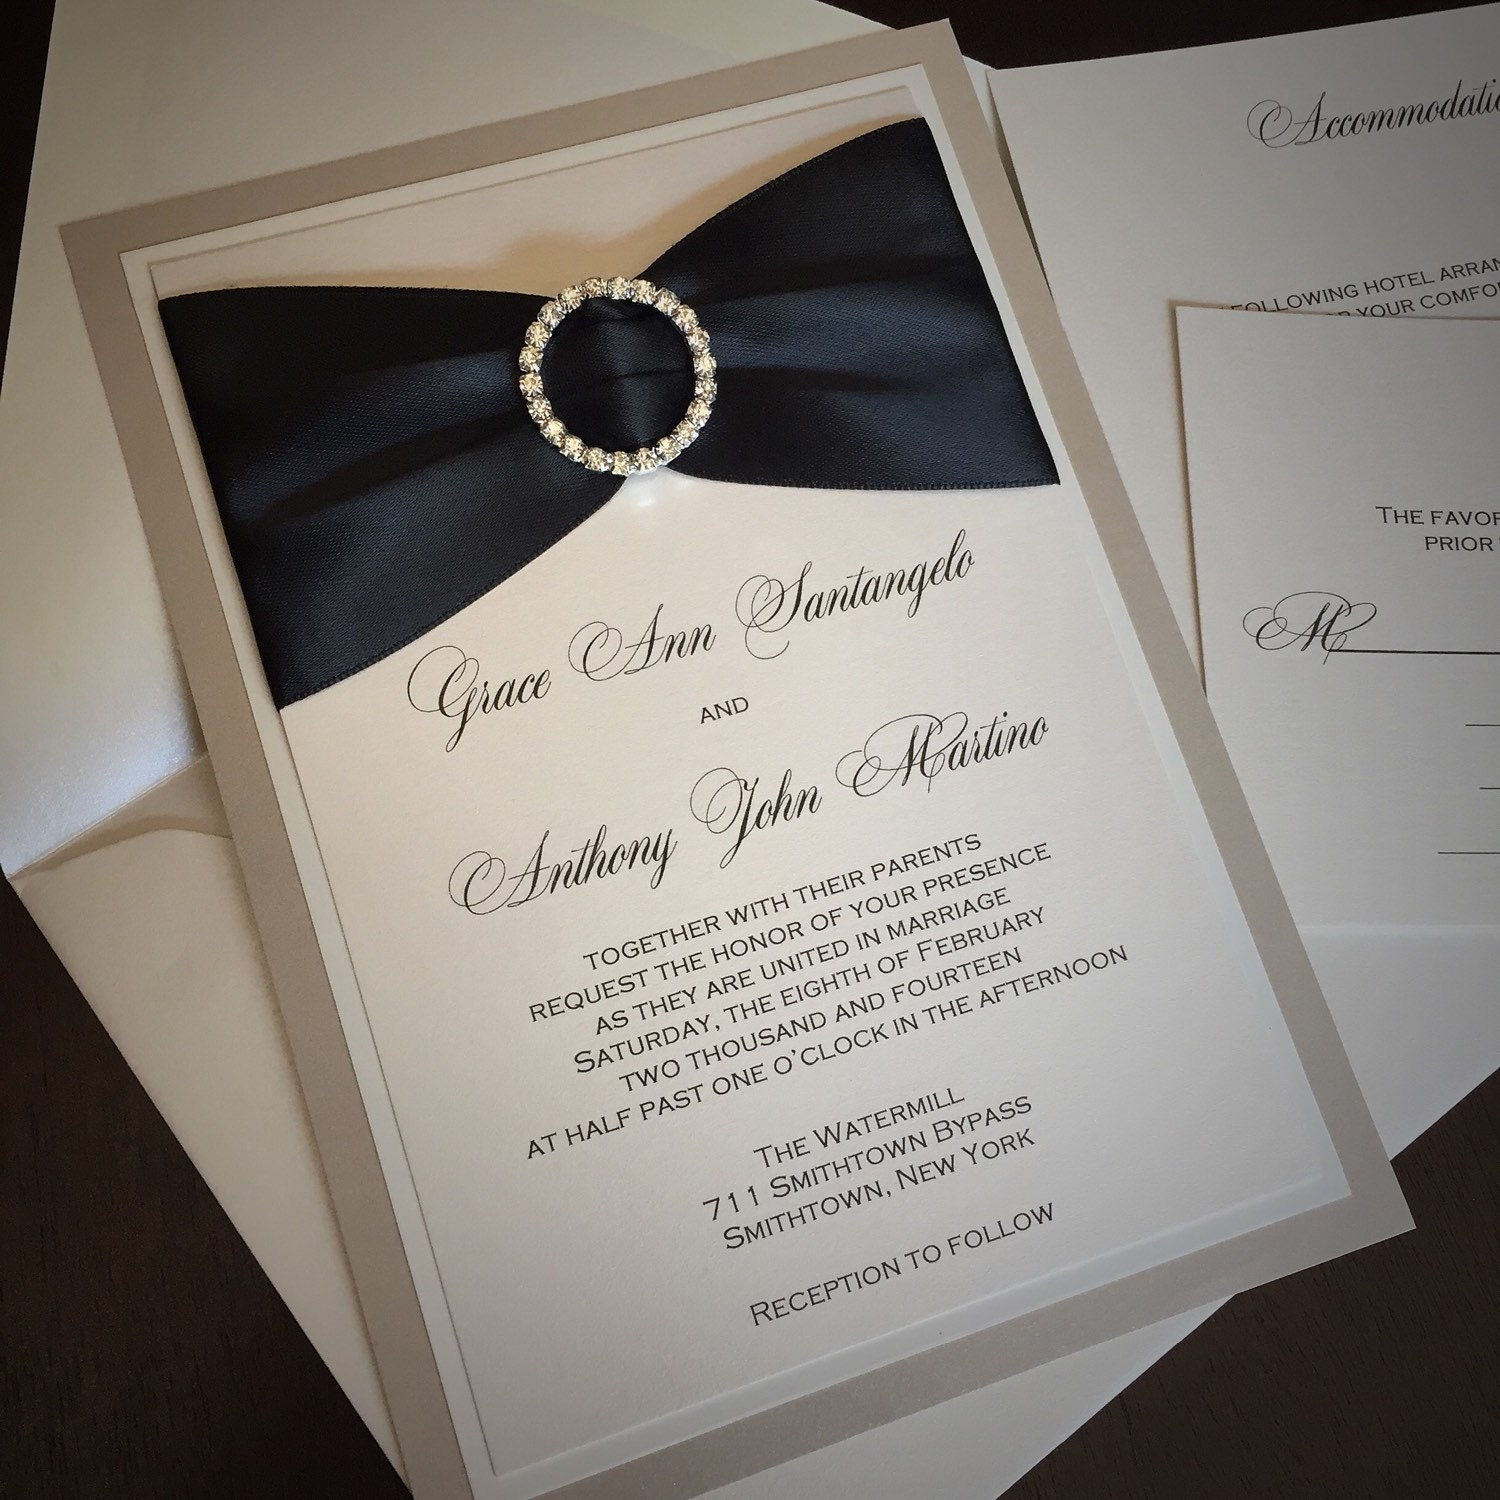 Gold Coast Wedding Invitations: GRACE ANN: Layered Wedding Invitation